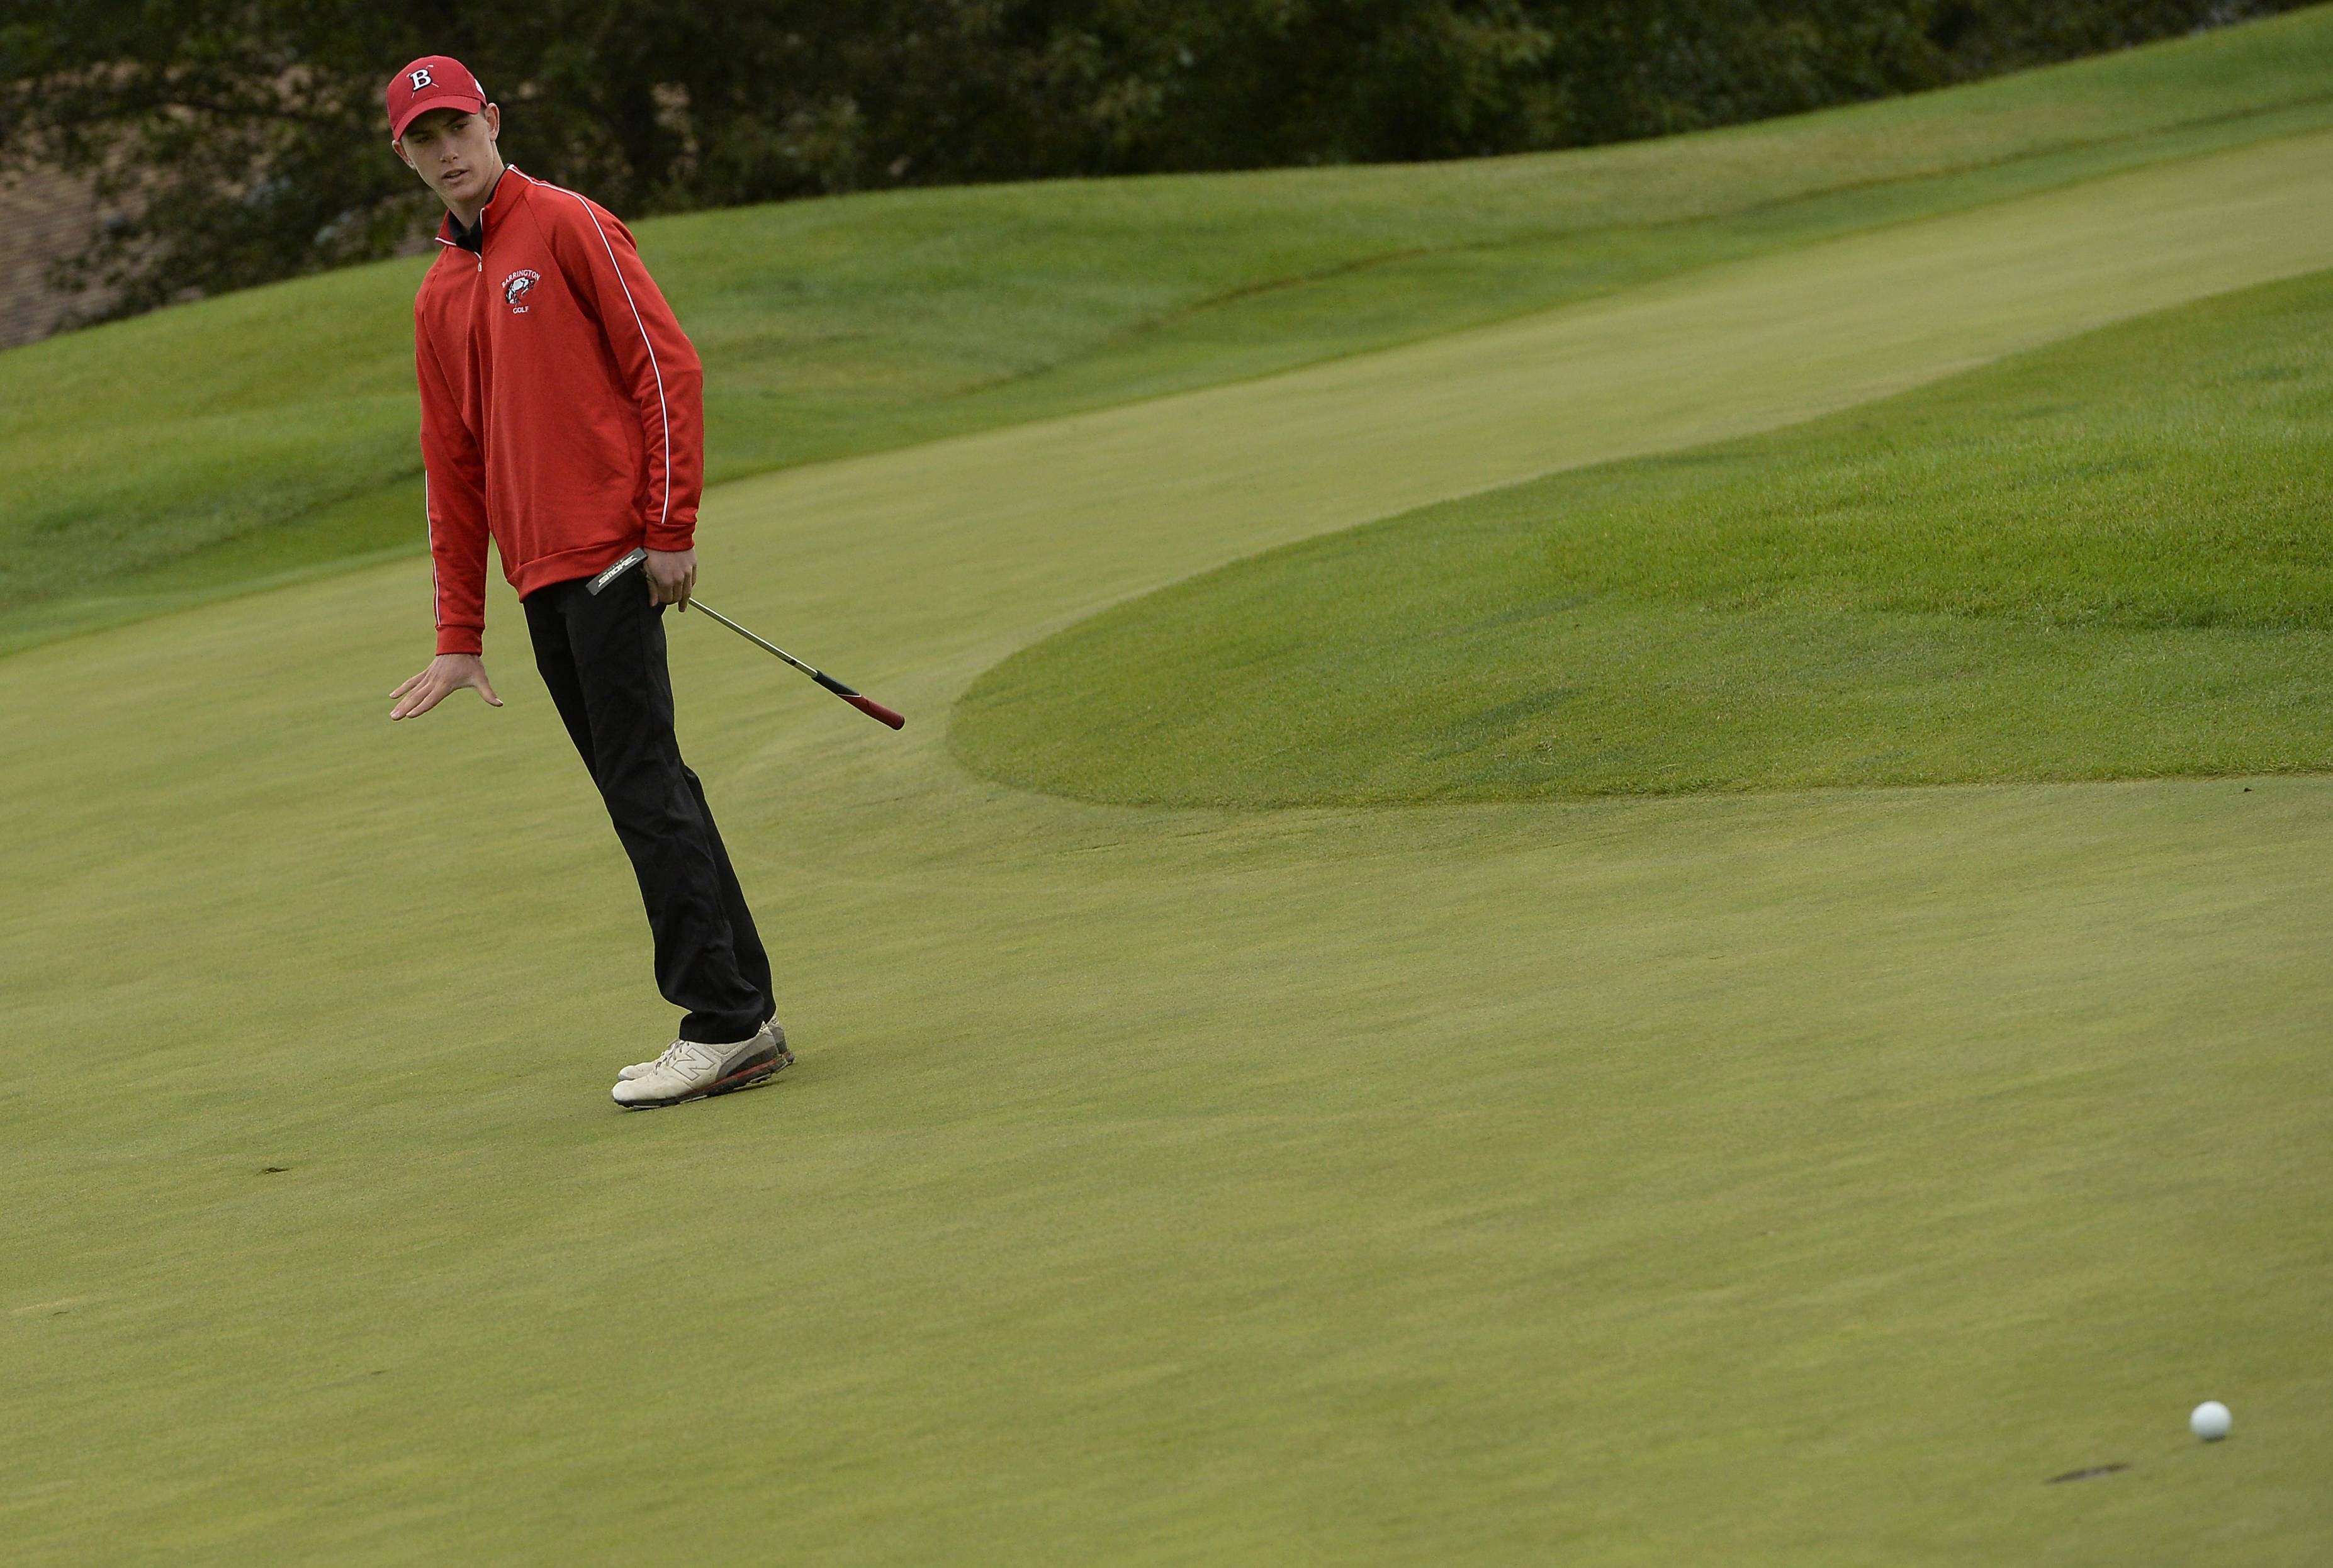 Barrington's Sean Markham gestures as he wants his ball to settle on the green after his putt on No. 1 in the boys golf regional at Makray Memorial Golf Club in Barrington on Tuesday.